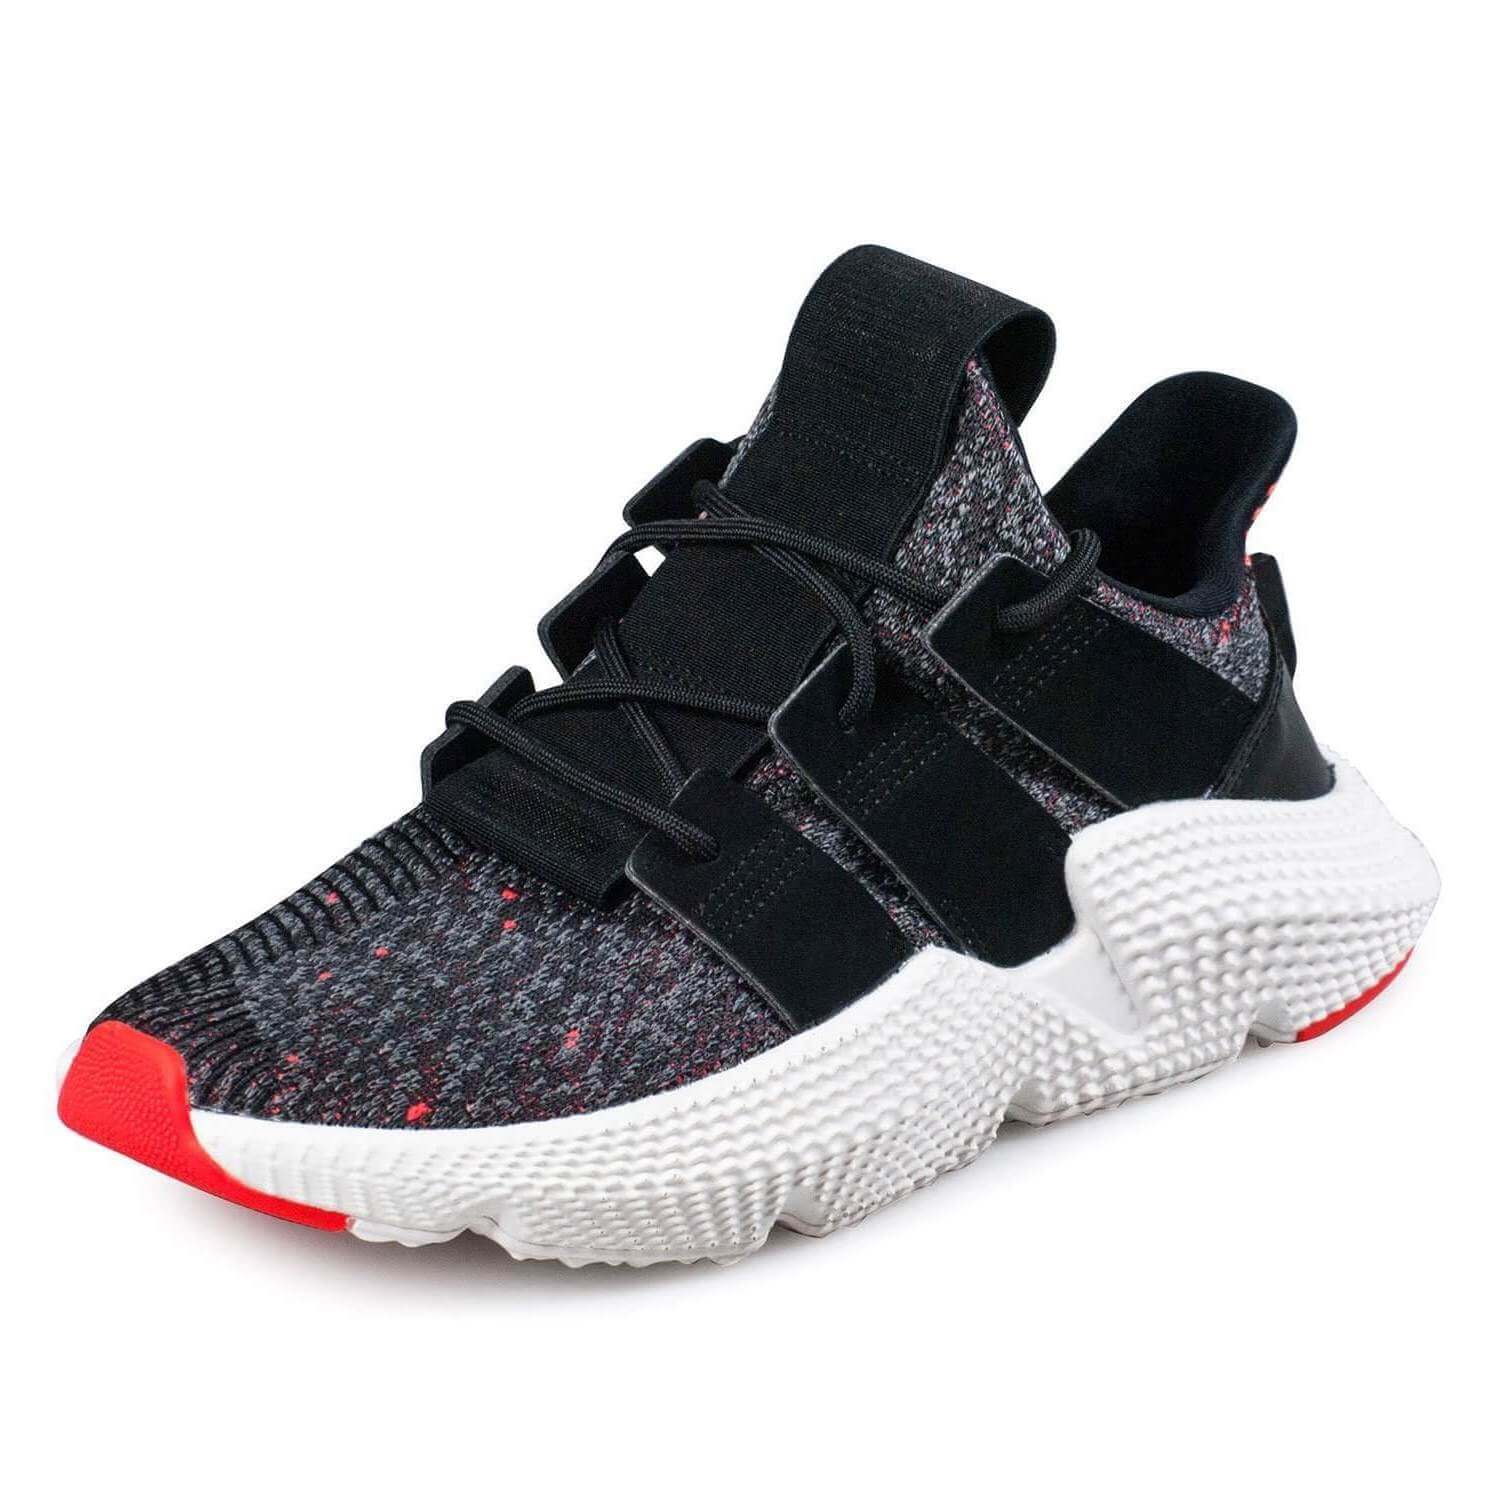 c31febde1 Adidas Prophere Fullyed and Compared - in May 2019